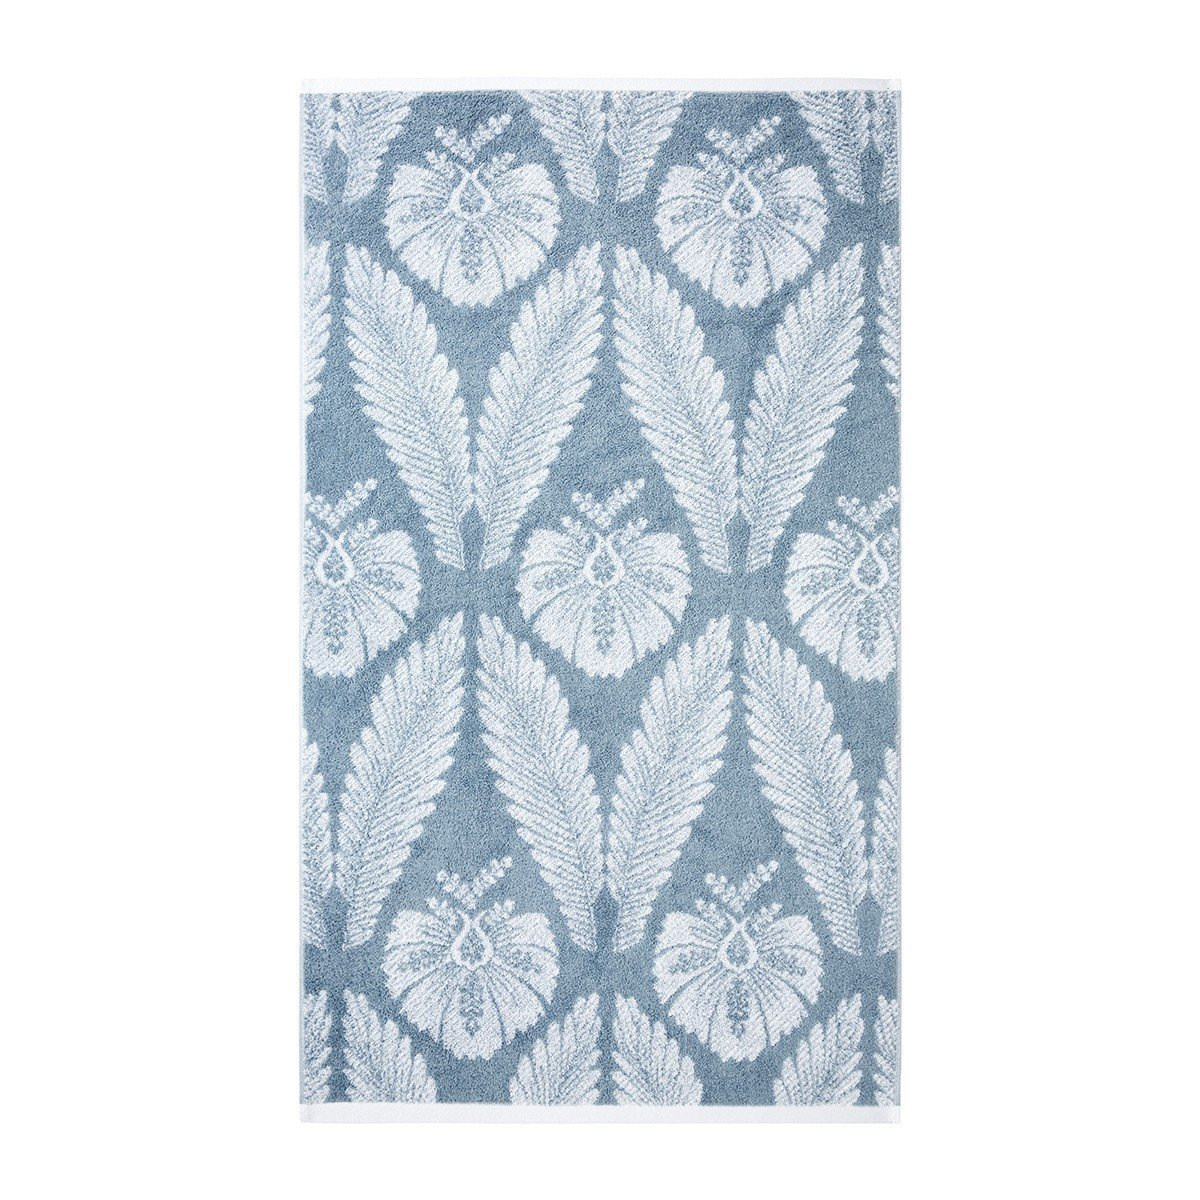 Yves Delorme Palmes Bath Towel Collection | Fig Linens, Blue bath, guest towel - front